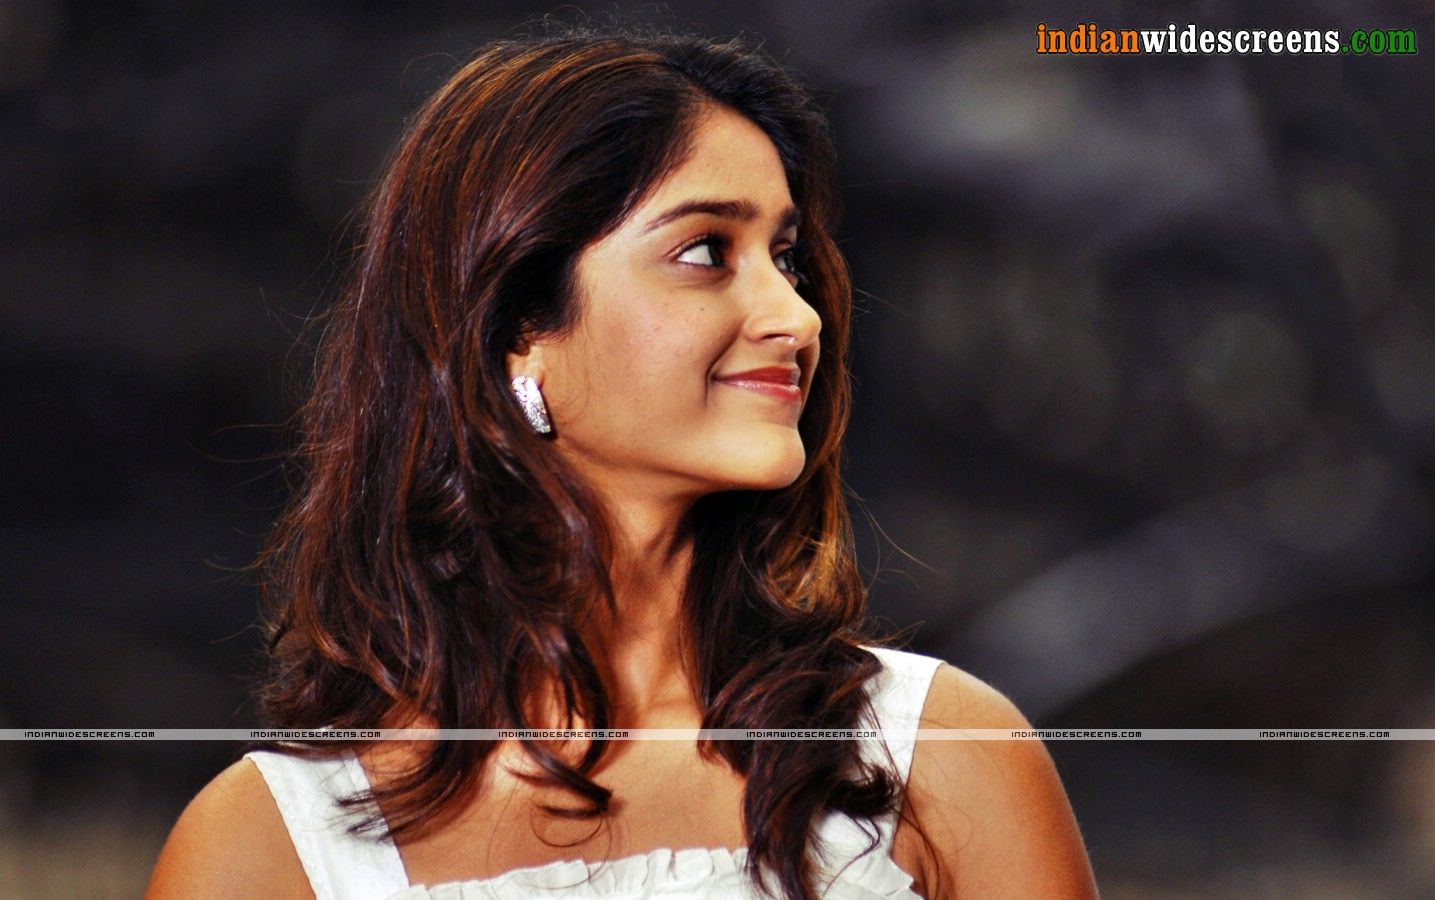 Ileana Dcruz Fucking Photos